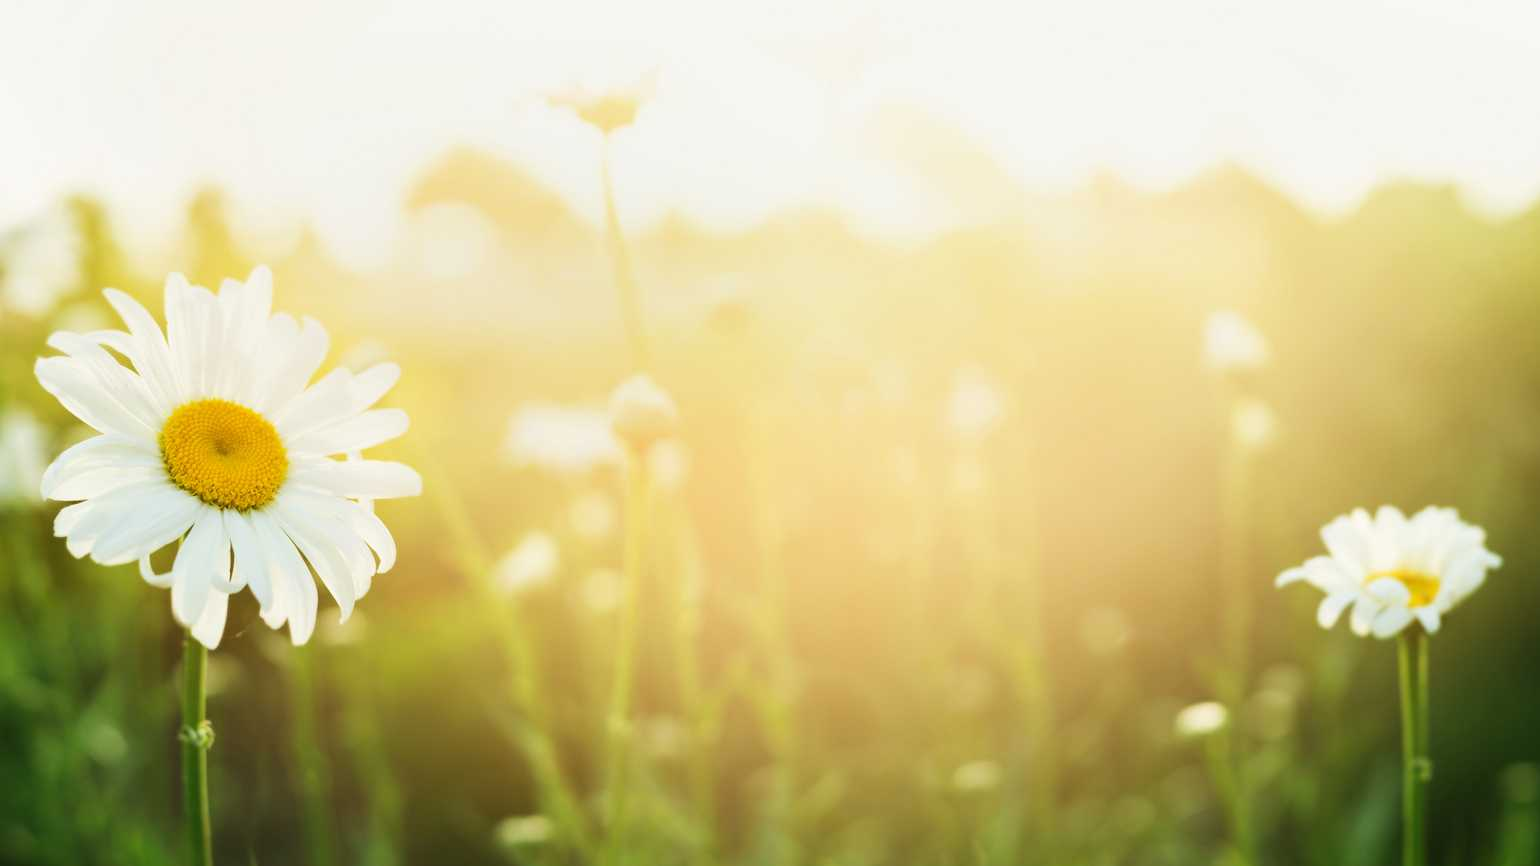 A field of blooming daisies underneath warm sunlight.